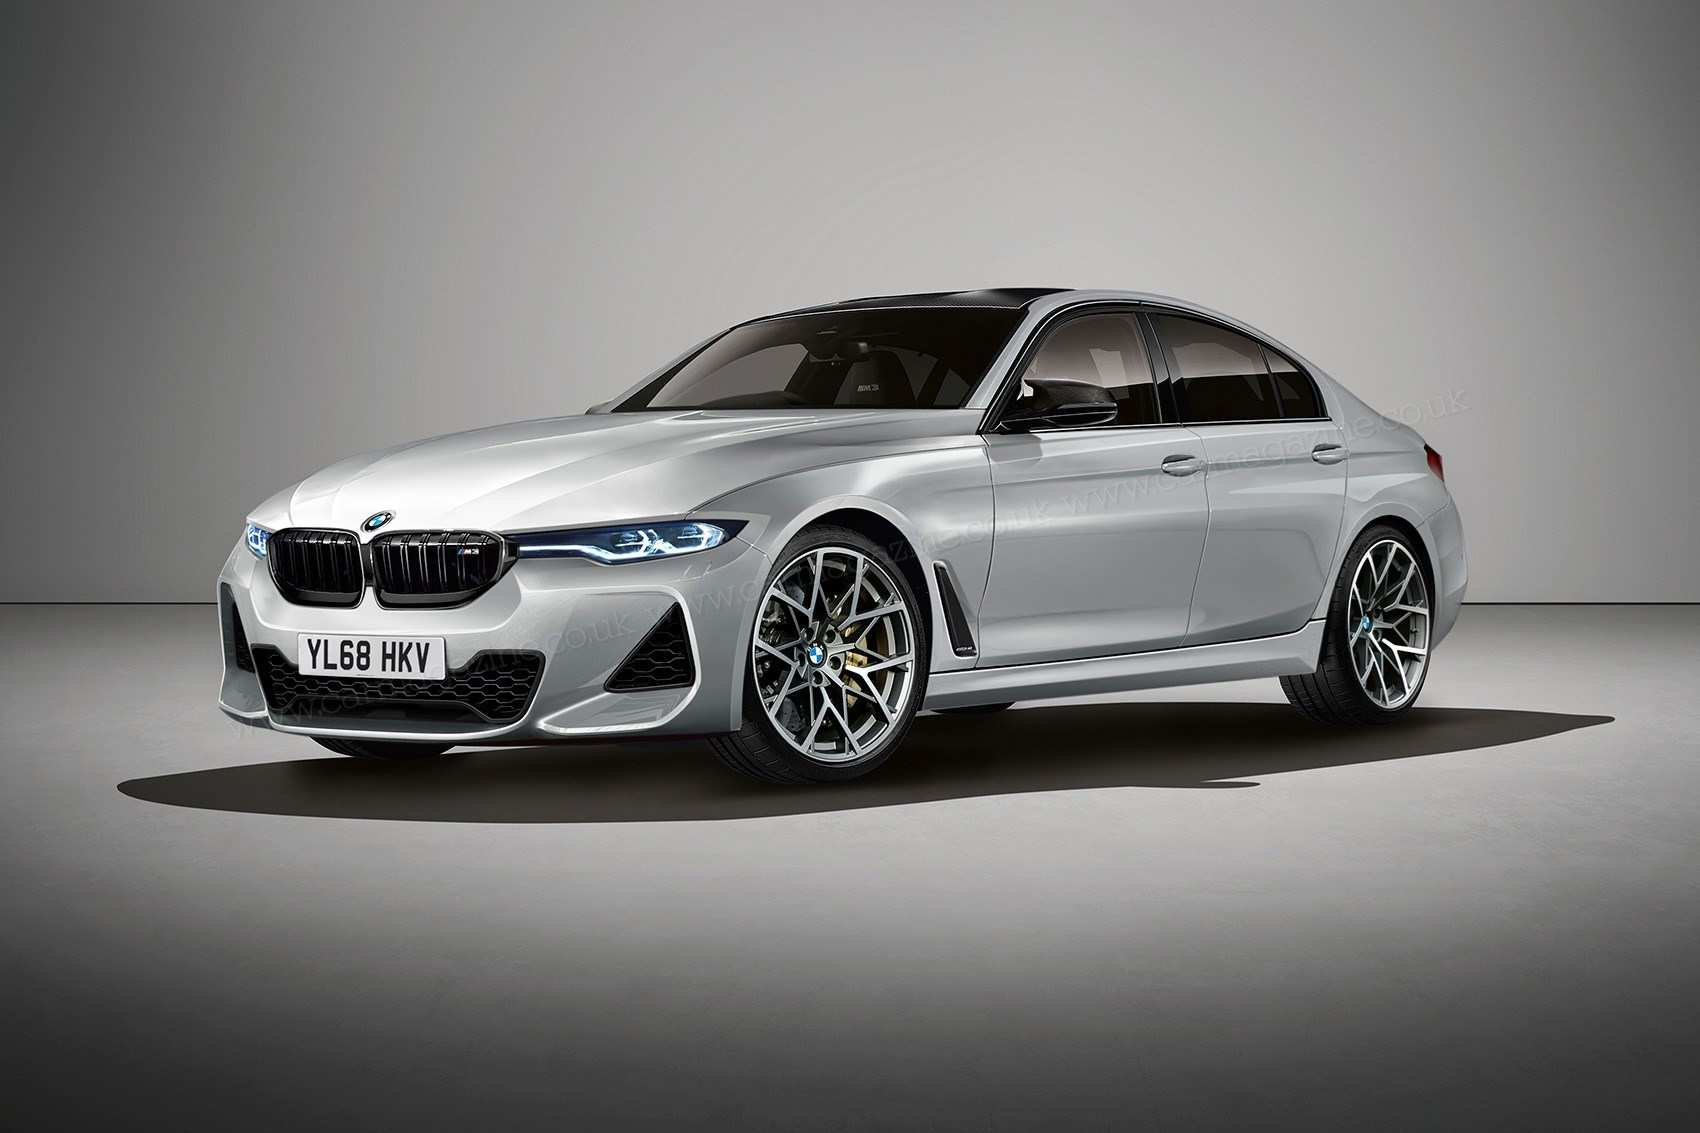 73 All New 2020 Bmw M3 Price Rumors by 2020 Bmw M3 Price